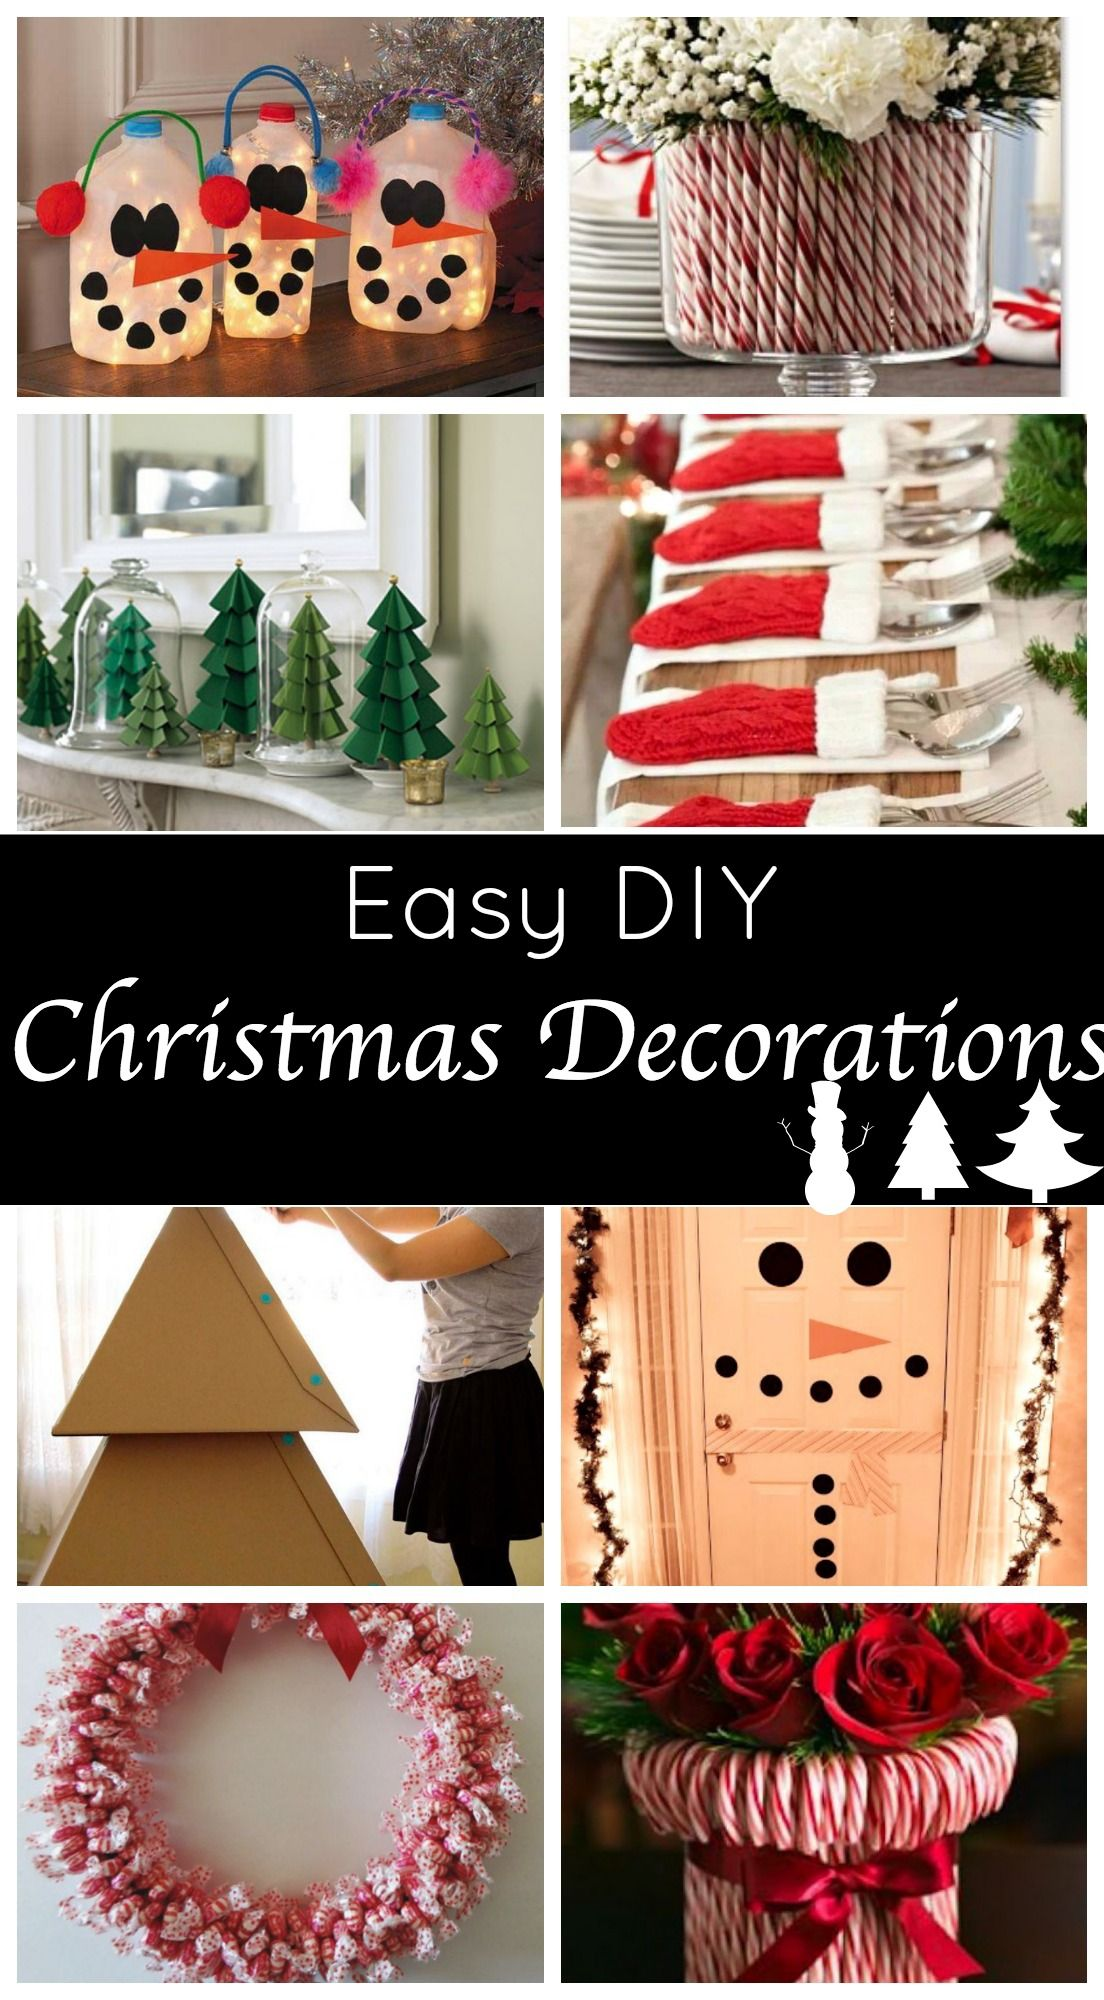 The Best DIY Holiday Decor on Pinterest Princess Pinky